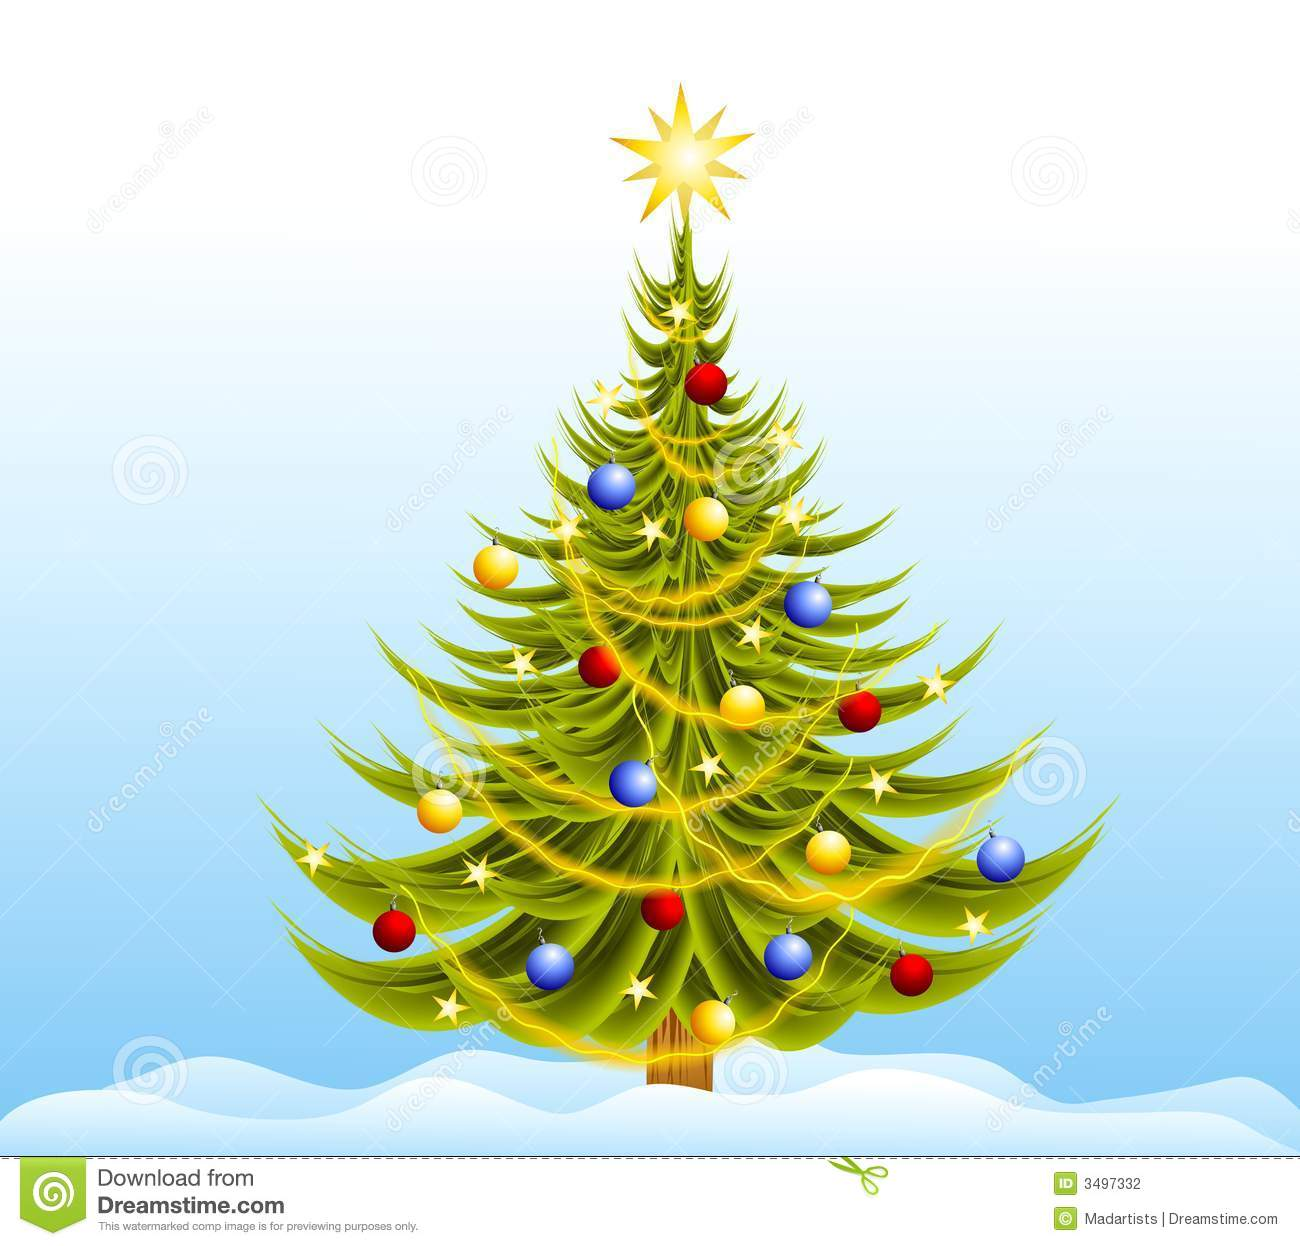 Snowy Christmas Tree Clipart